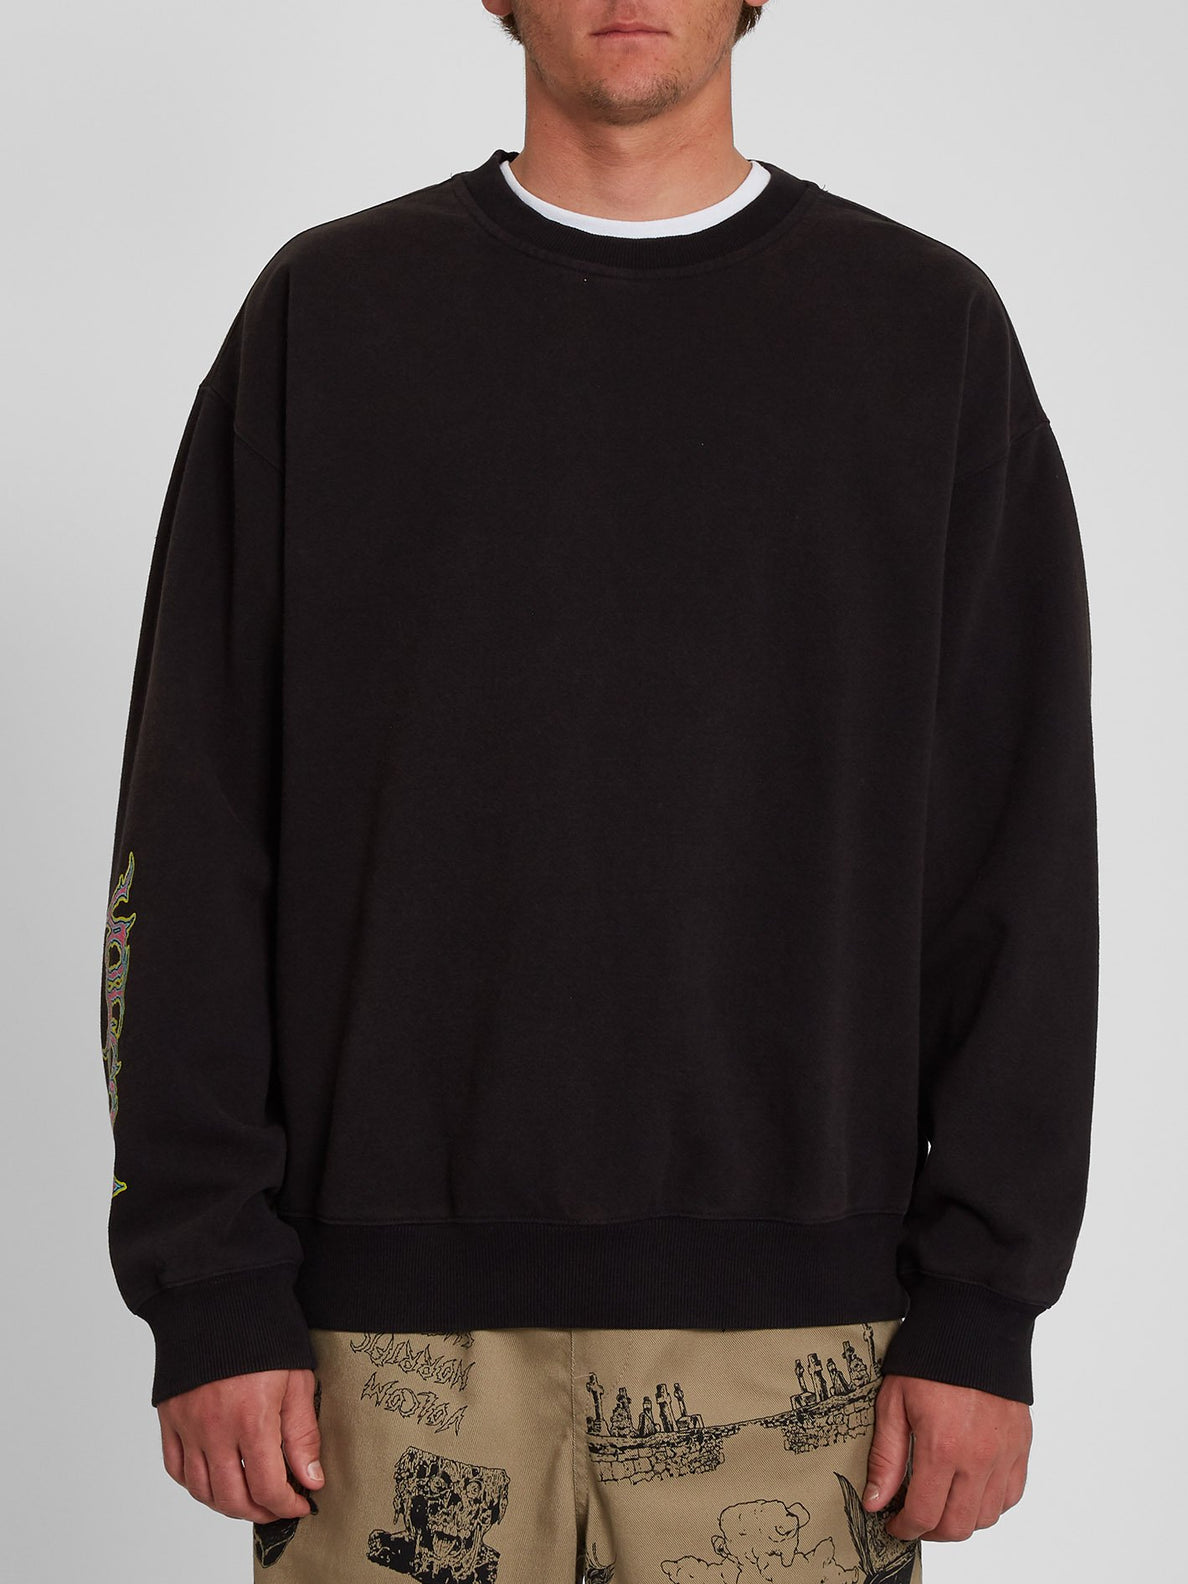 Black Sounds Sweatshirt - BLACK (A4642003_BLK) [F]